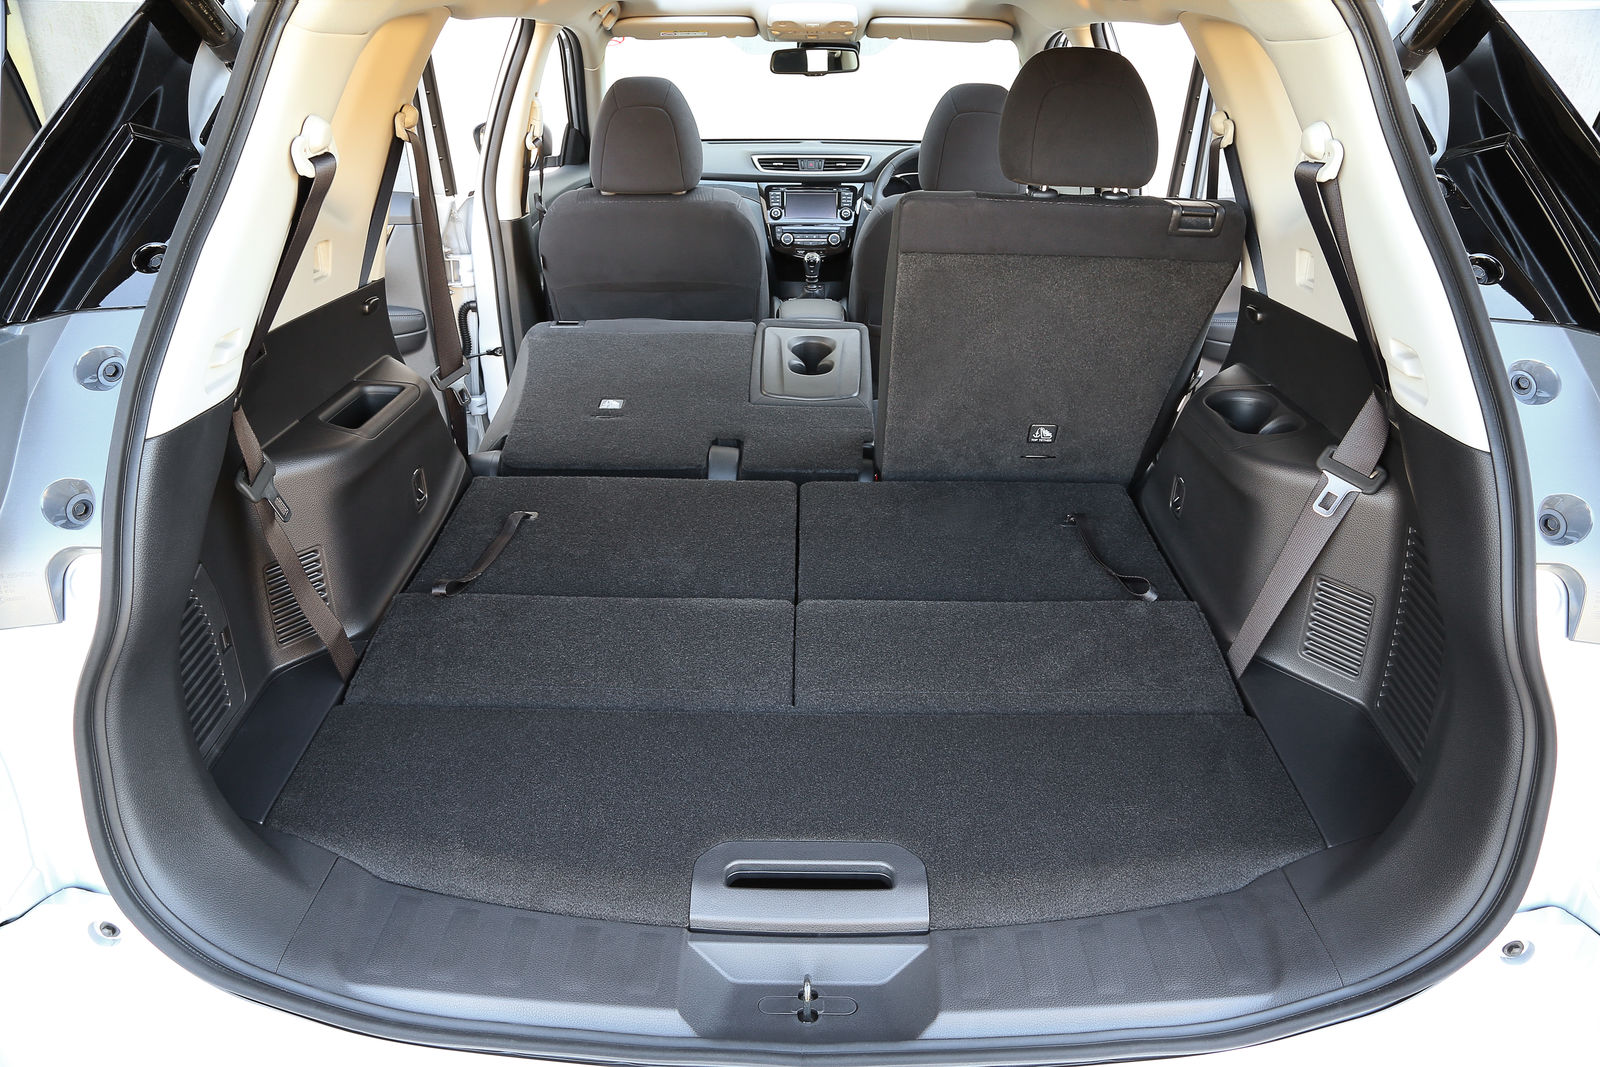 Nissan X-Trail sizes and dimensions guide | carwow